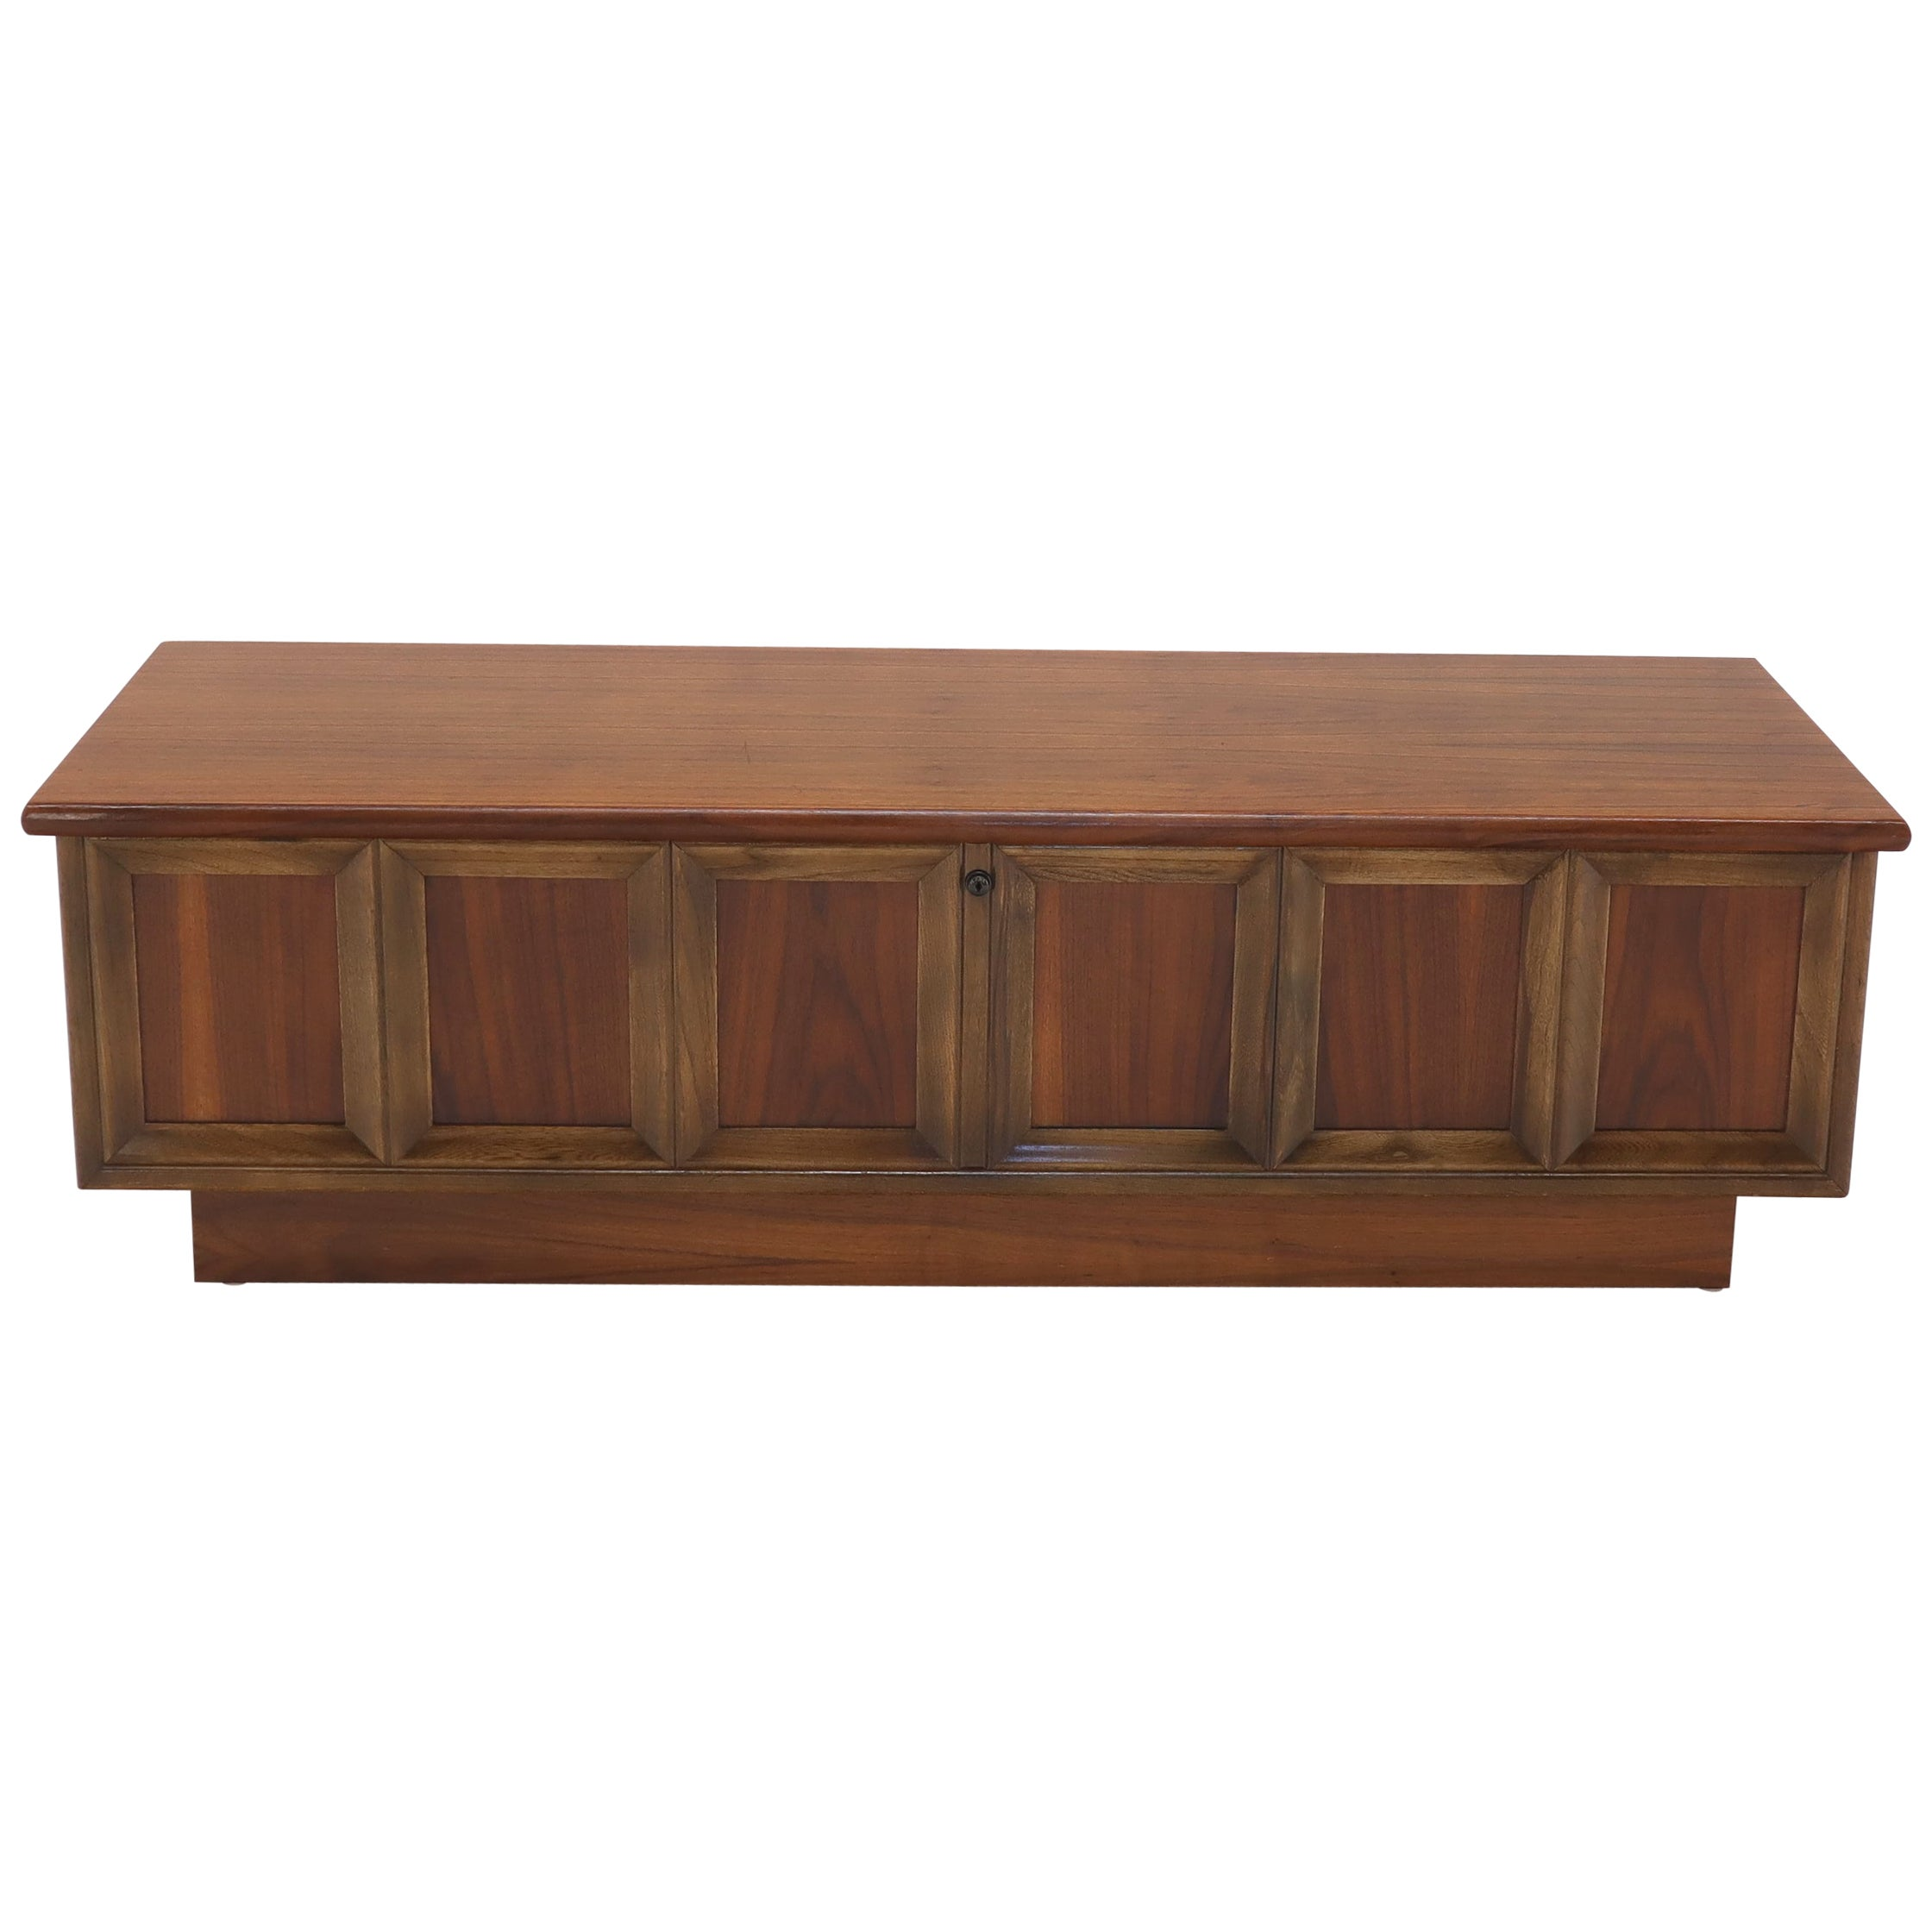 Walnut Cedar Lined Mid-Century Modern Hope Chest by Lane